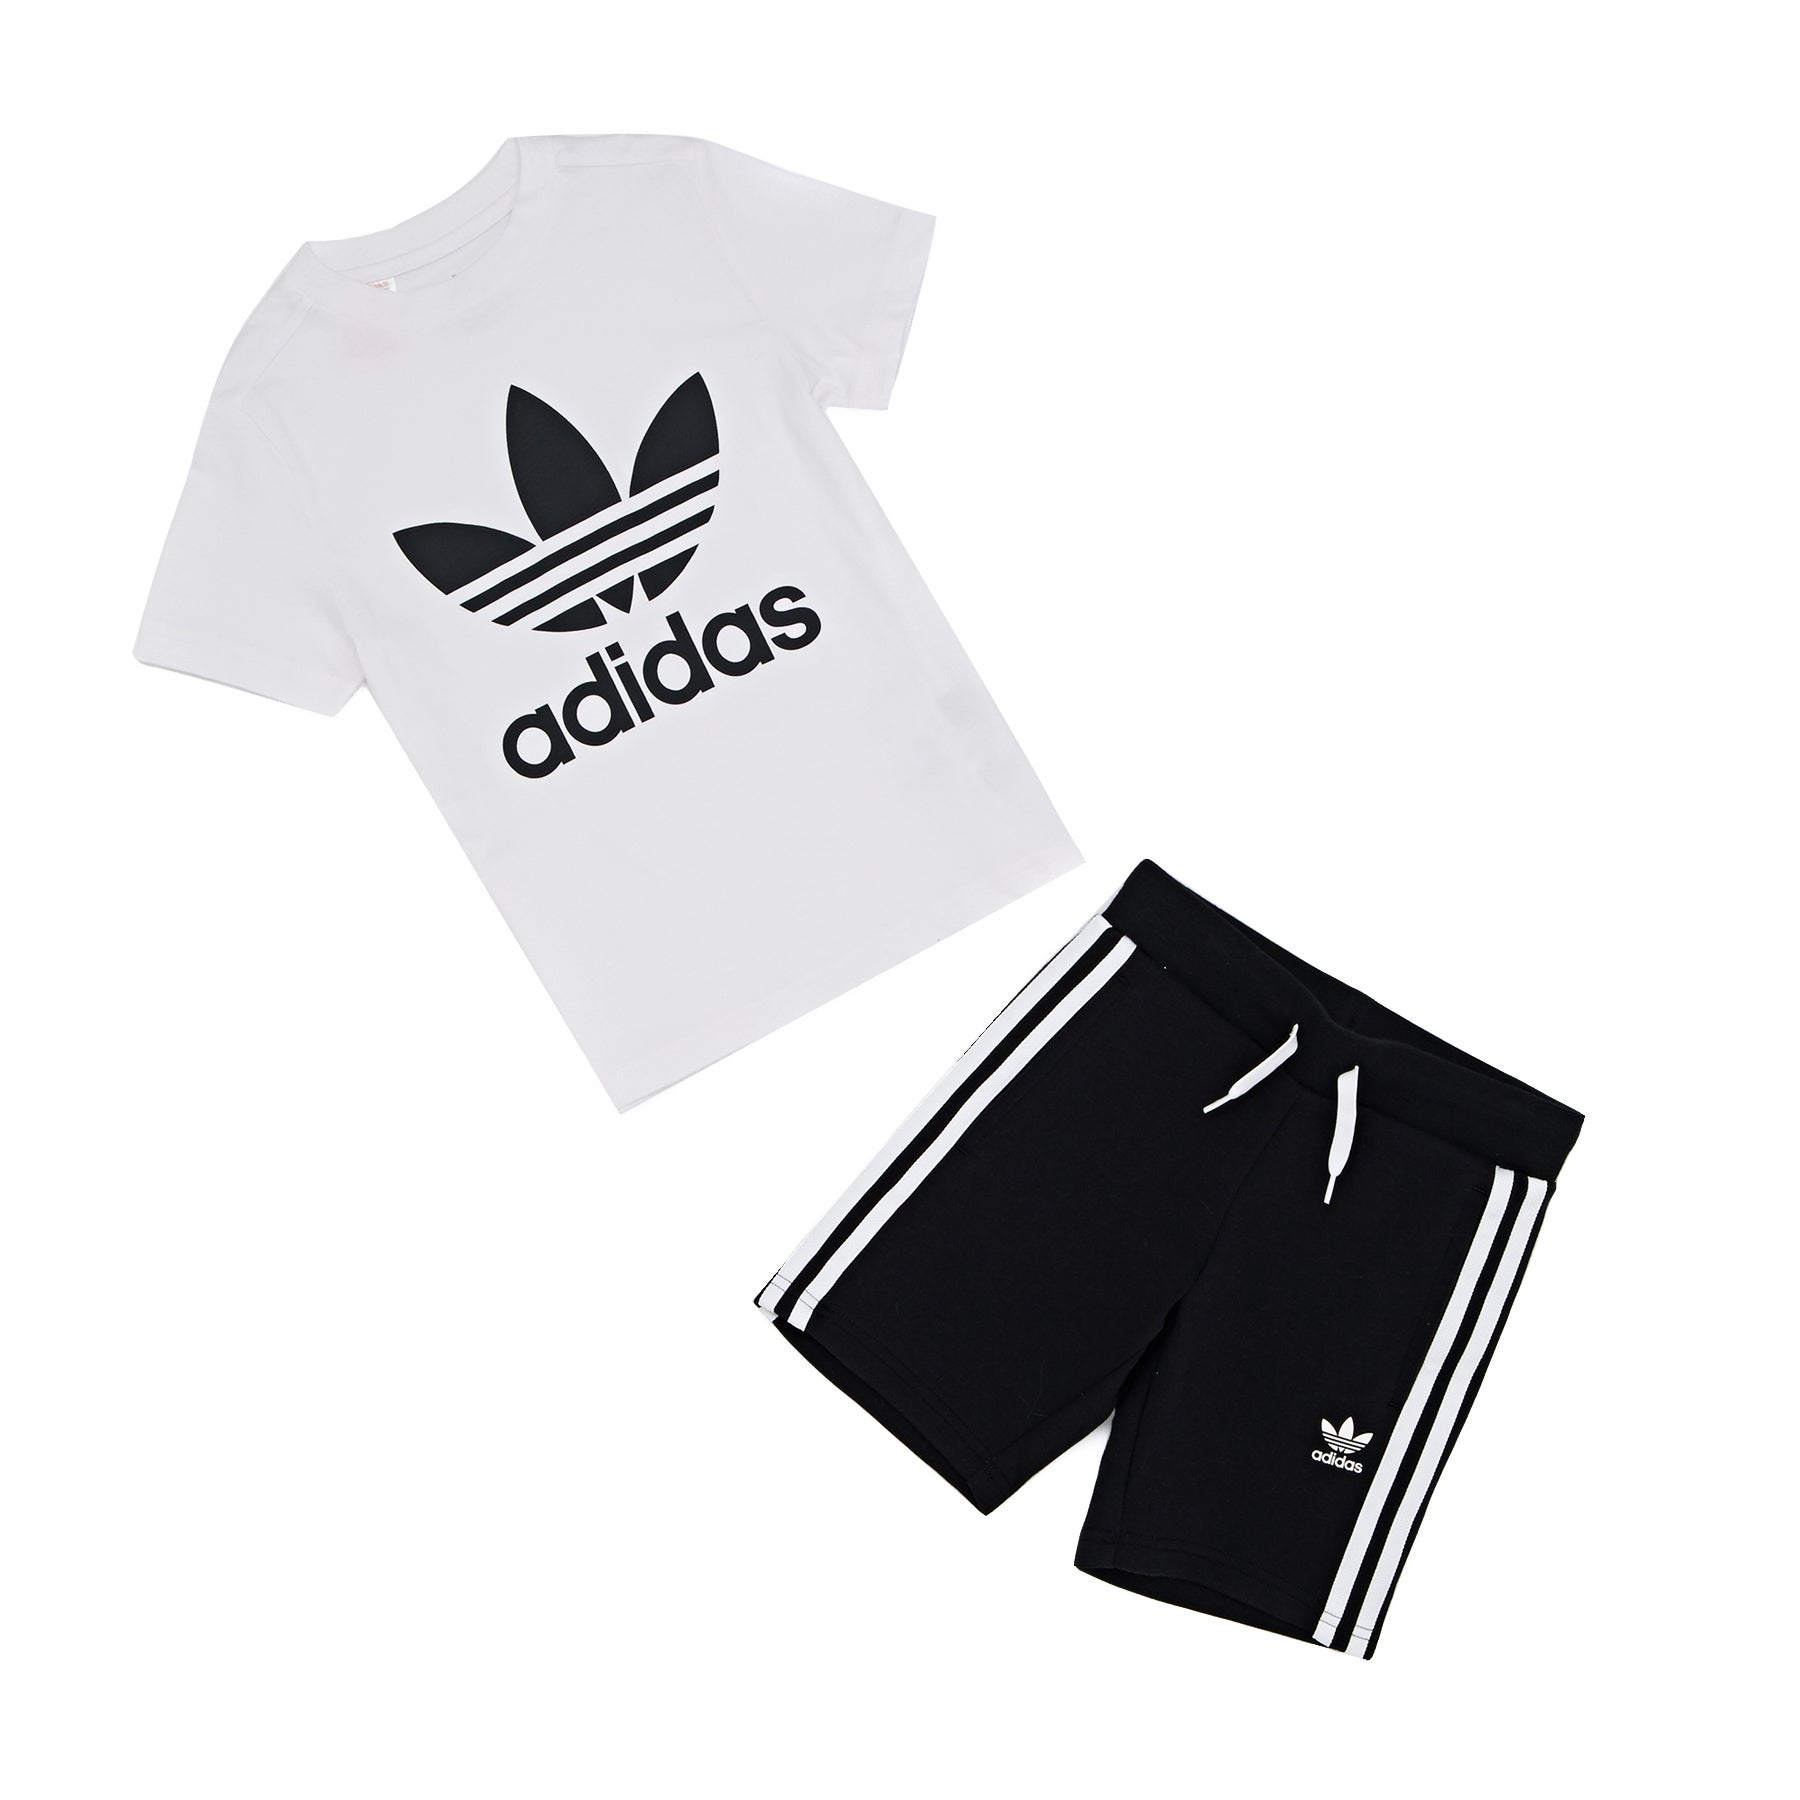 aba9f6b4d Adidas Originals Short Set With Kids T-shirt - White Back All Sizes ...